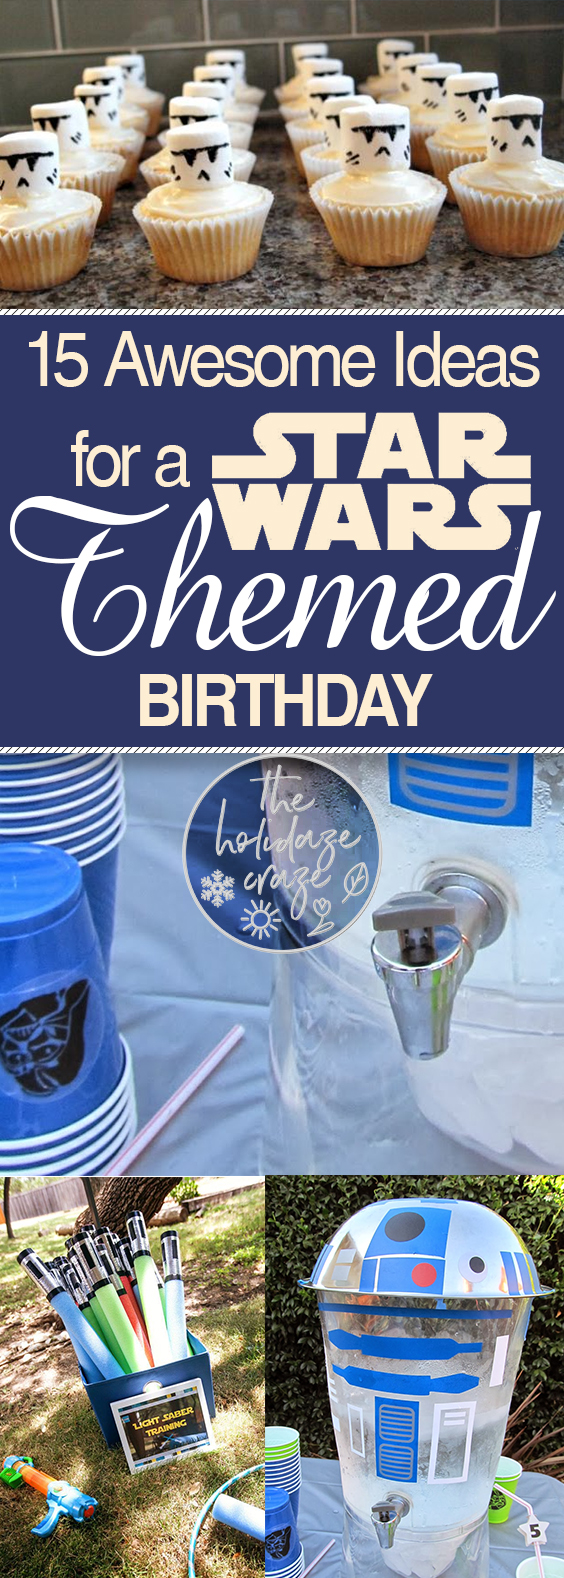 Star Wars Birthday Party Ideas, Star Wars Party, Birthday Party Ideas, Birthday Party Themes, Kids Birthday Party, Fun Birthday Party Themes, Party Ideas, Popular Pin #Party #PartyIdeas #Birthday #BirthdayParty #KidsBirthdayParty